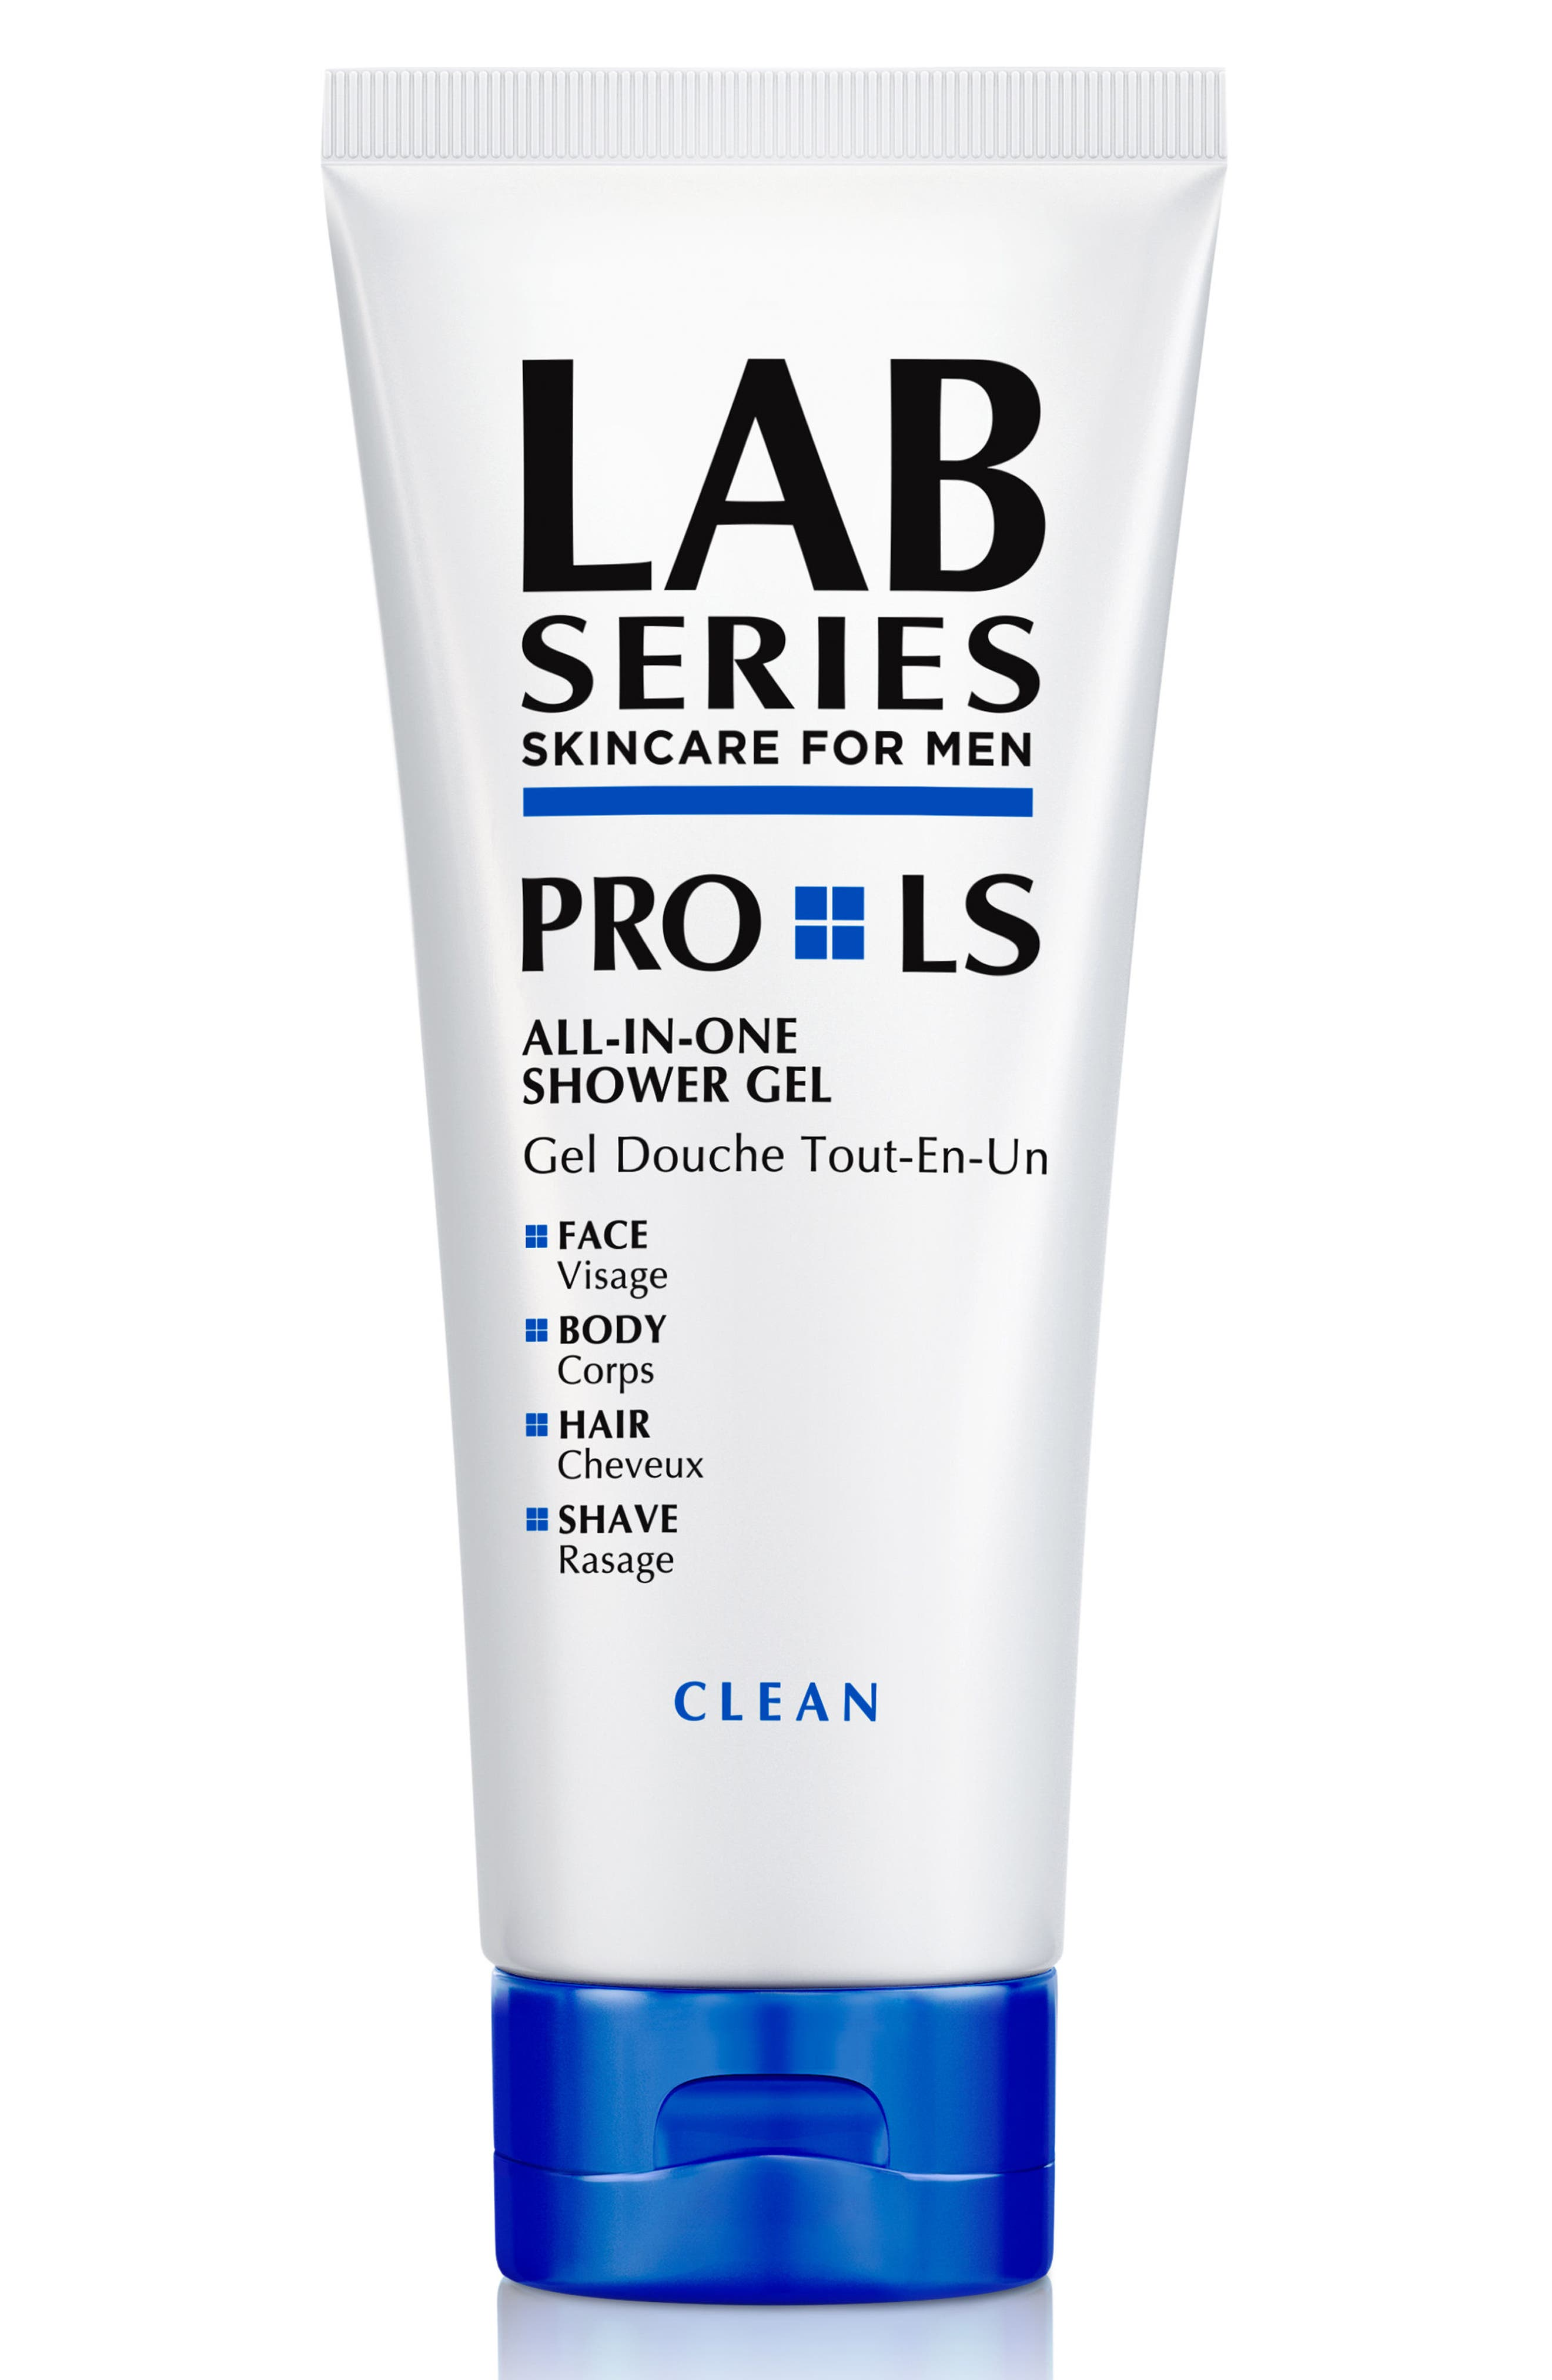 LAB SERIES SKINCARE FOR MEN,                             PRO LS All-in-One Shower Gel,                             Main thumbnail 1, color,                             000